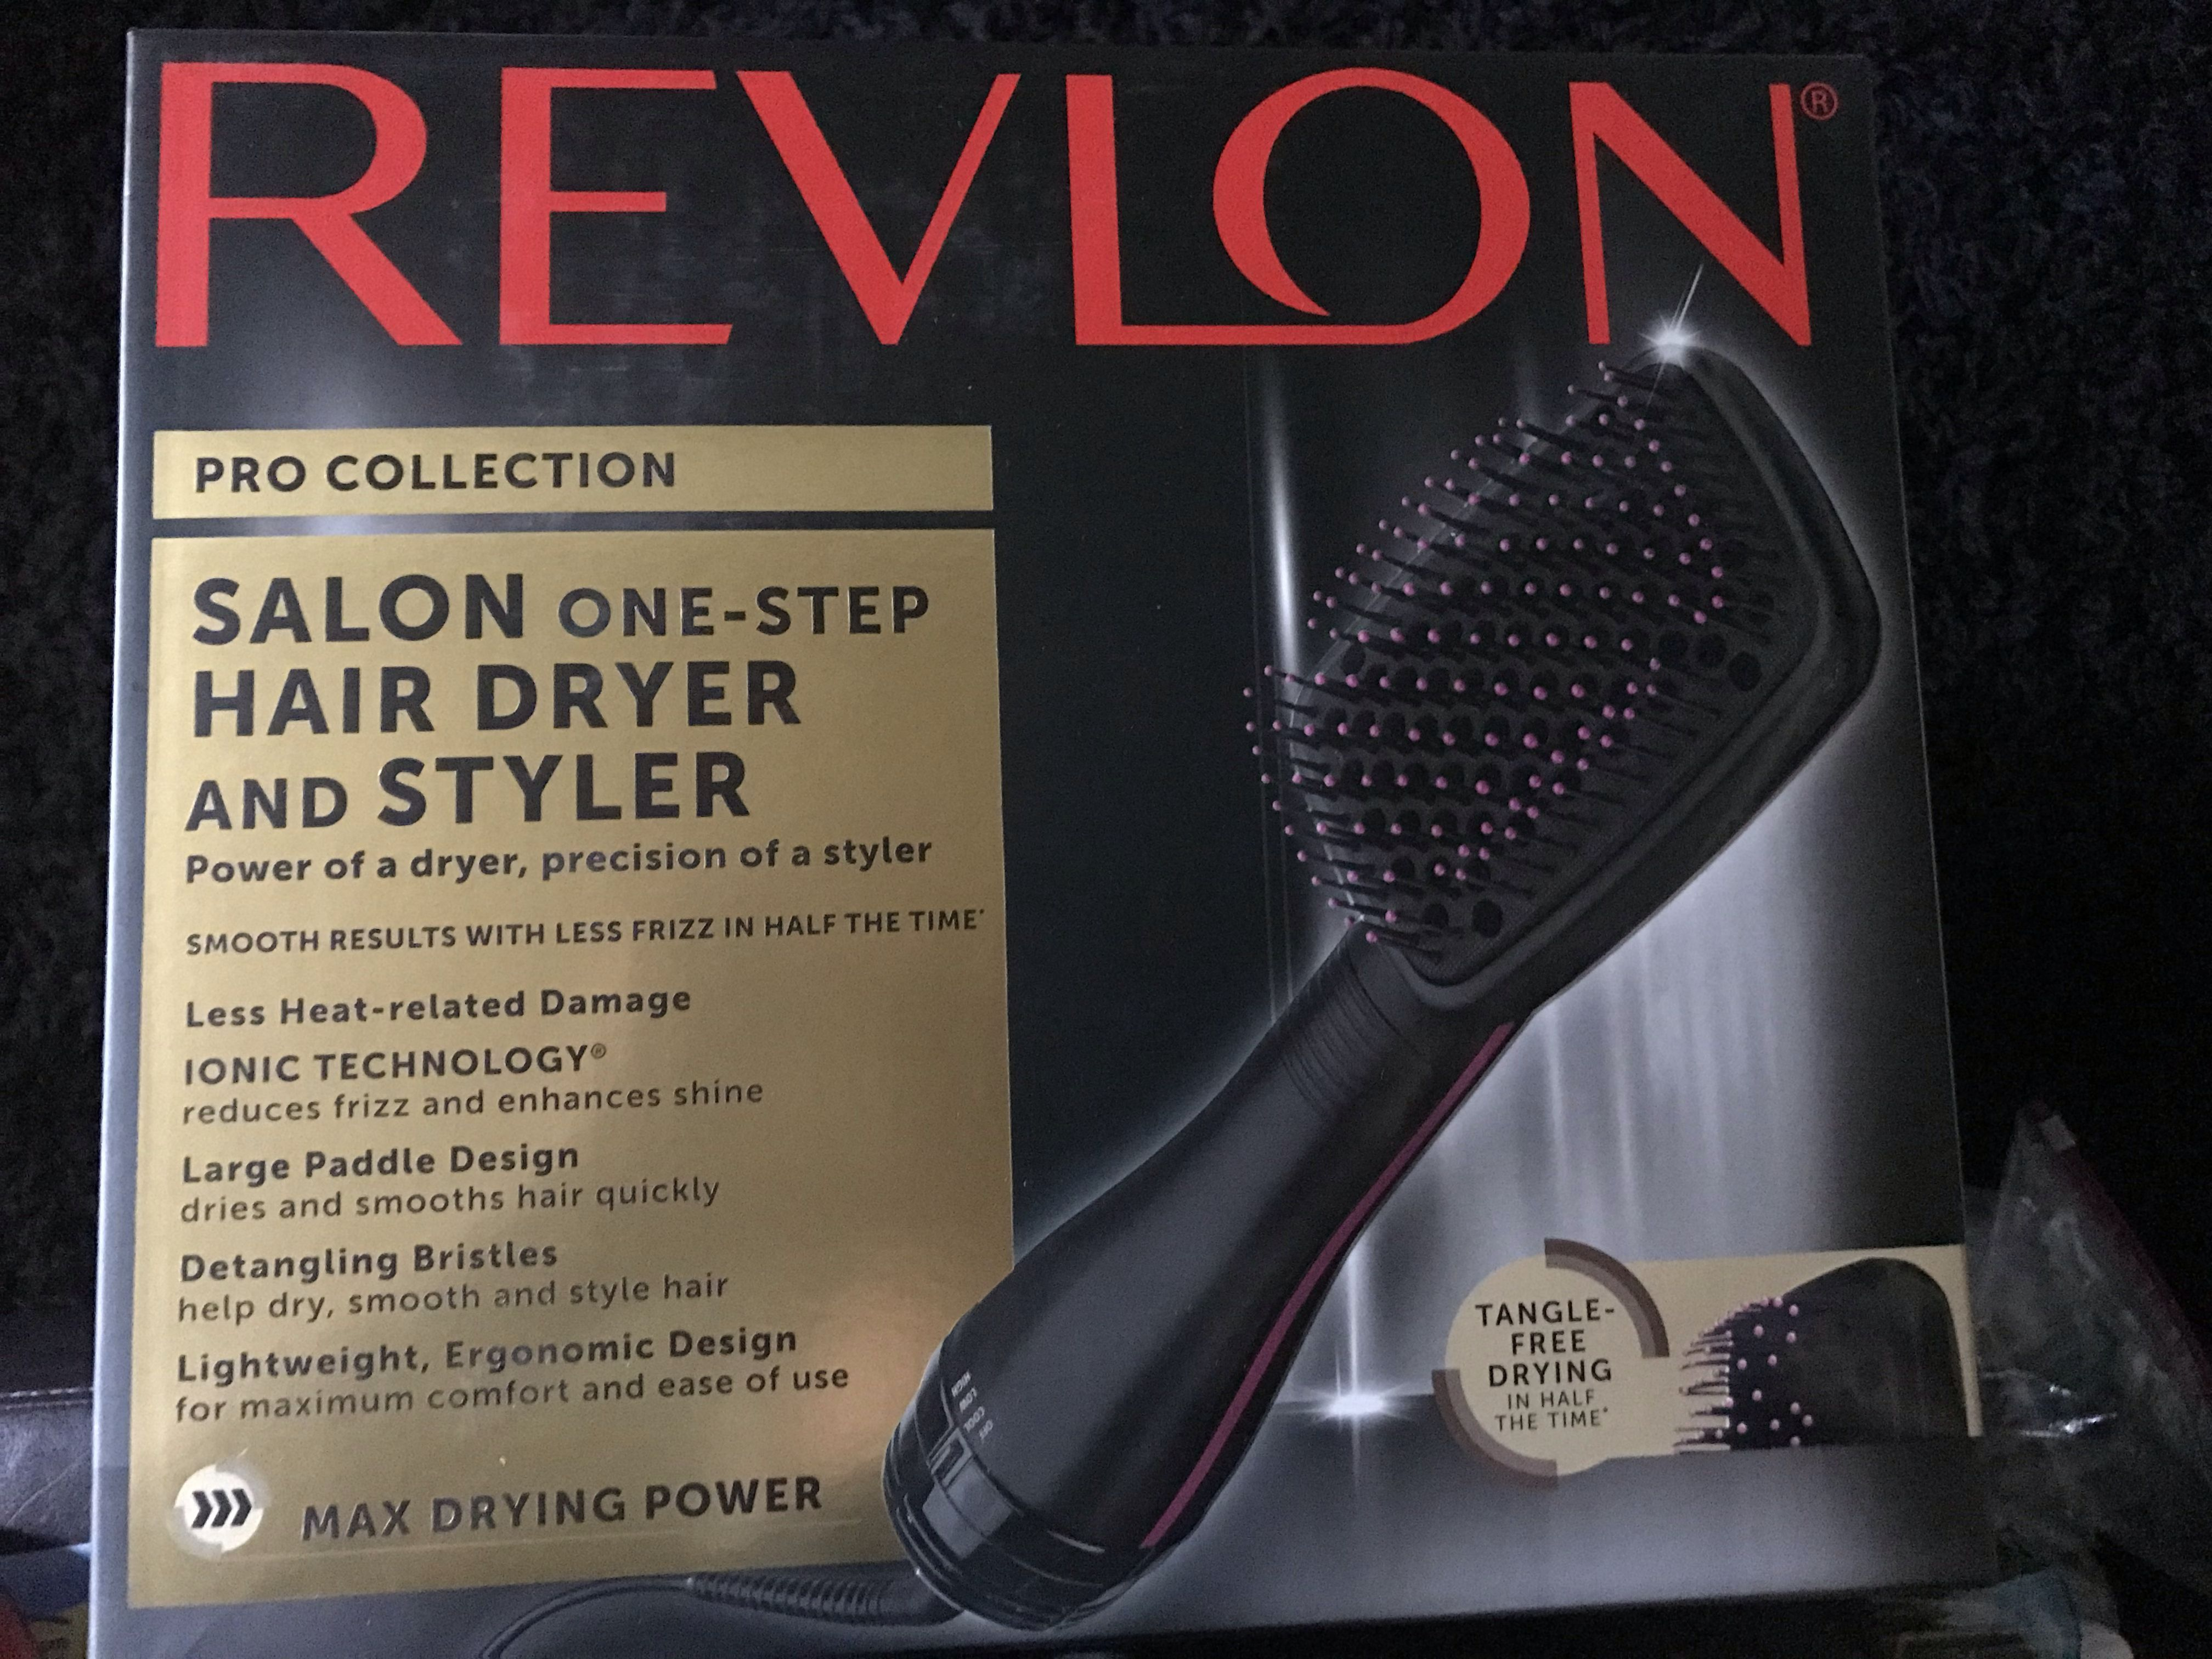 Trying out Revlon's blow dryer brush on type 4 hair in